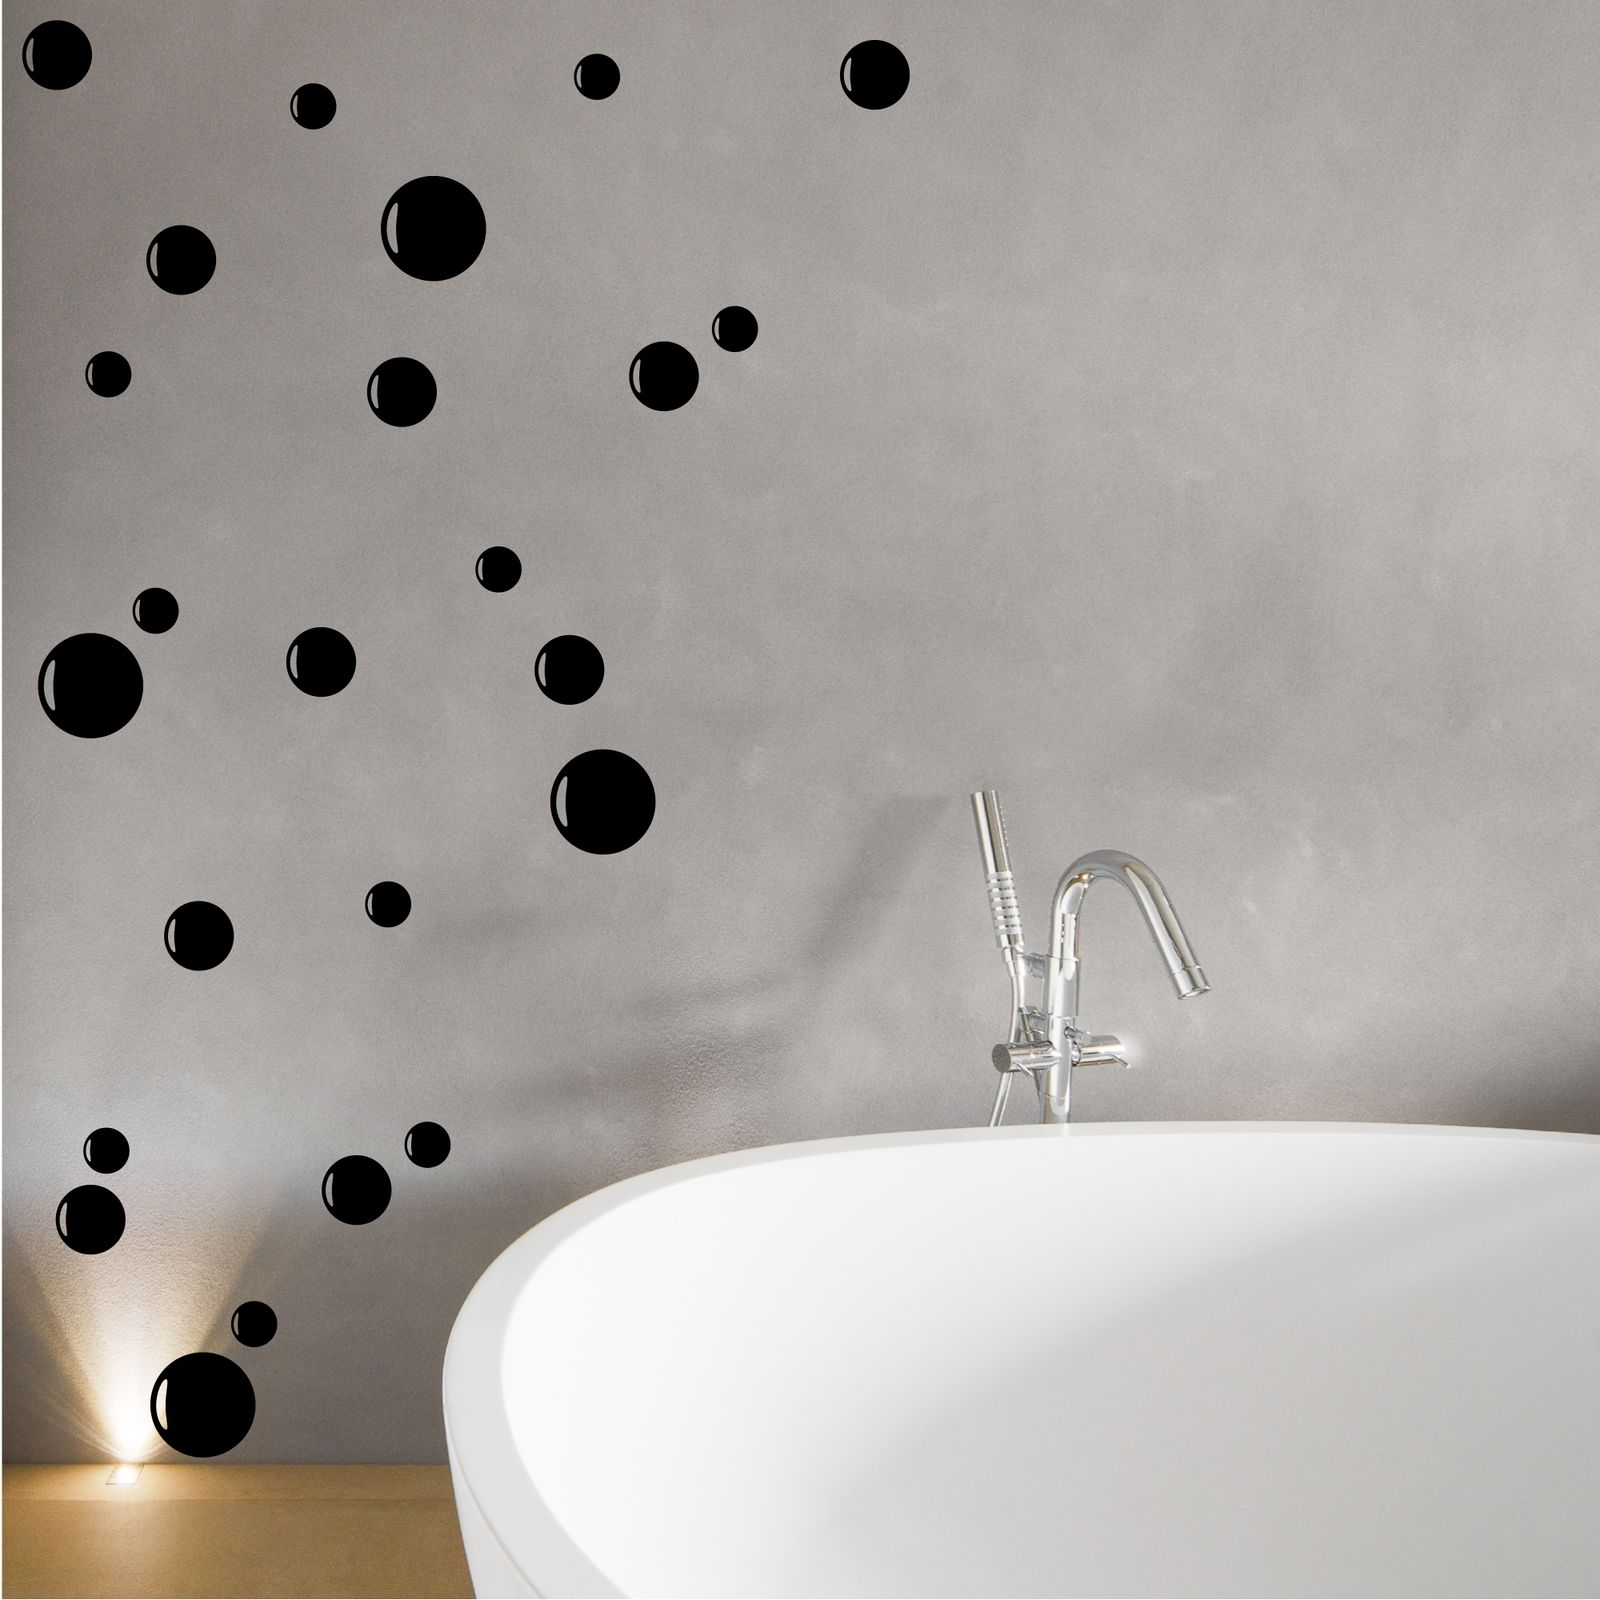 24 BUBBLE WALL STICKERS SAFTEY GLASS MANIFESTATION TILE SHOWER PANEL EN  SUITE. Bubble Wall Stickers   eBay